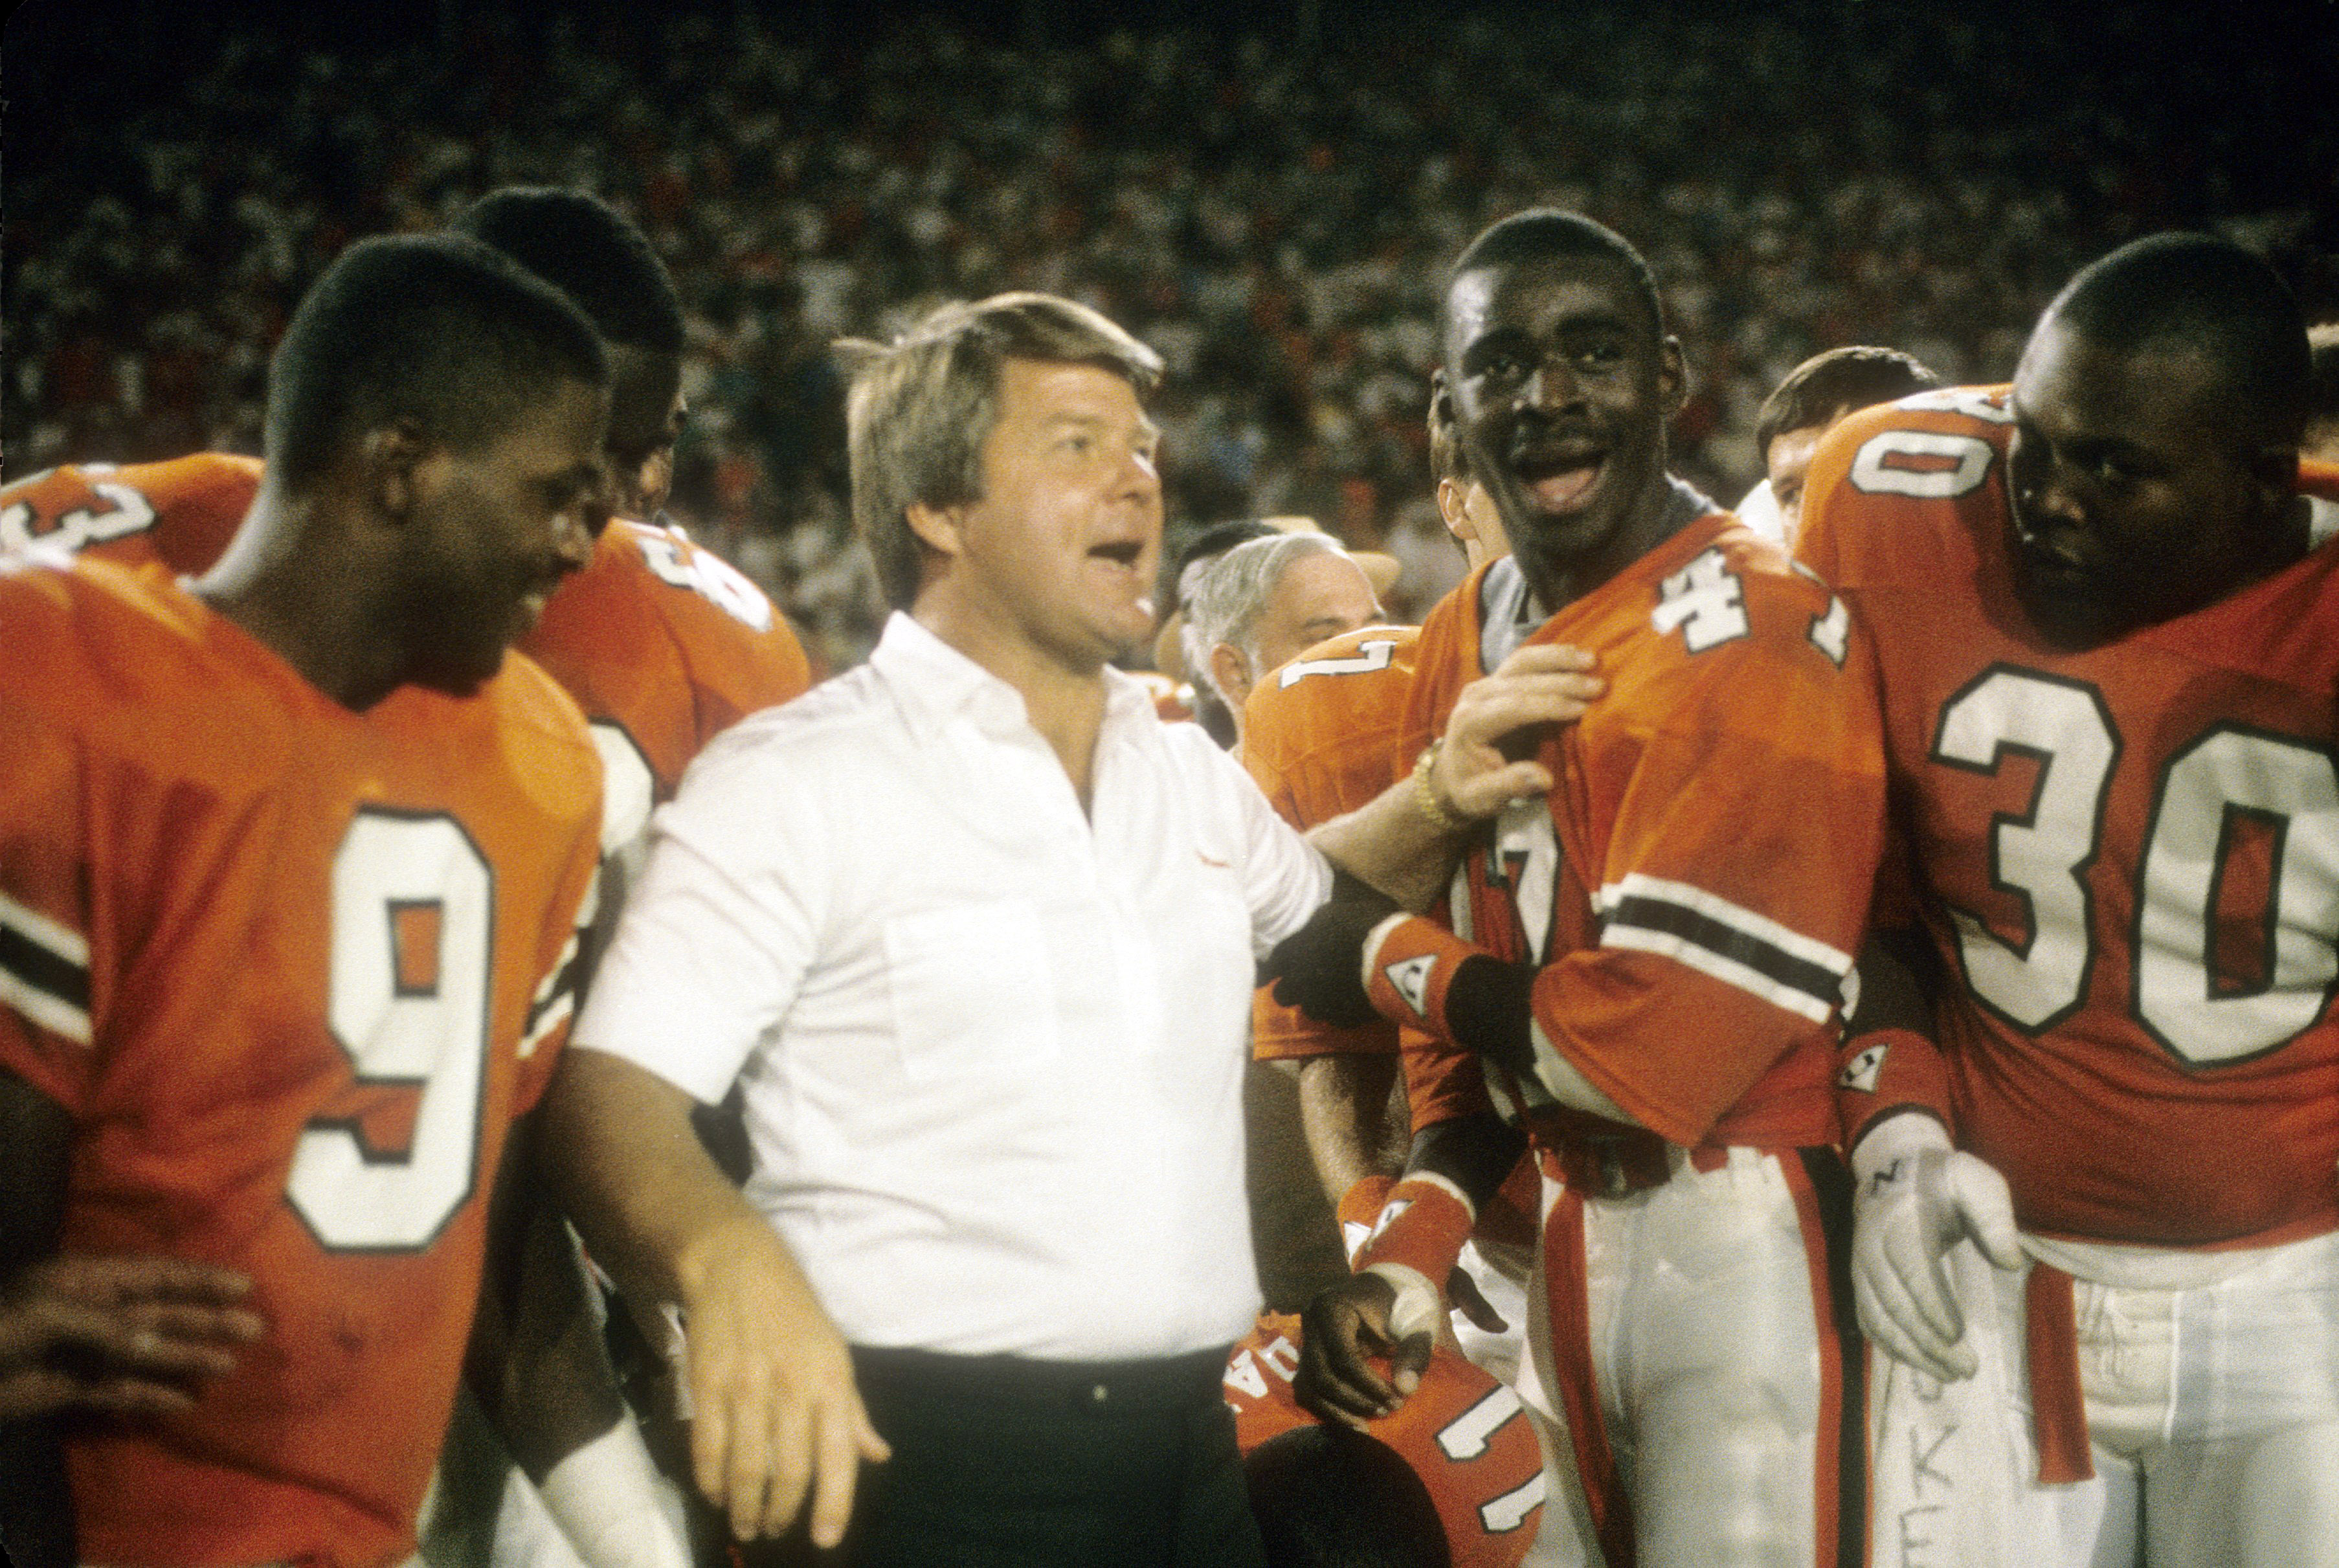 January 1, 1988: NCAA Orange Bowl Game - Oklahoma Sooner v Miami Hurricanes